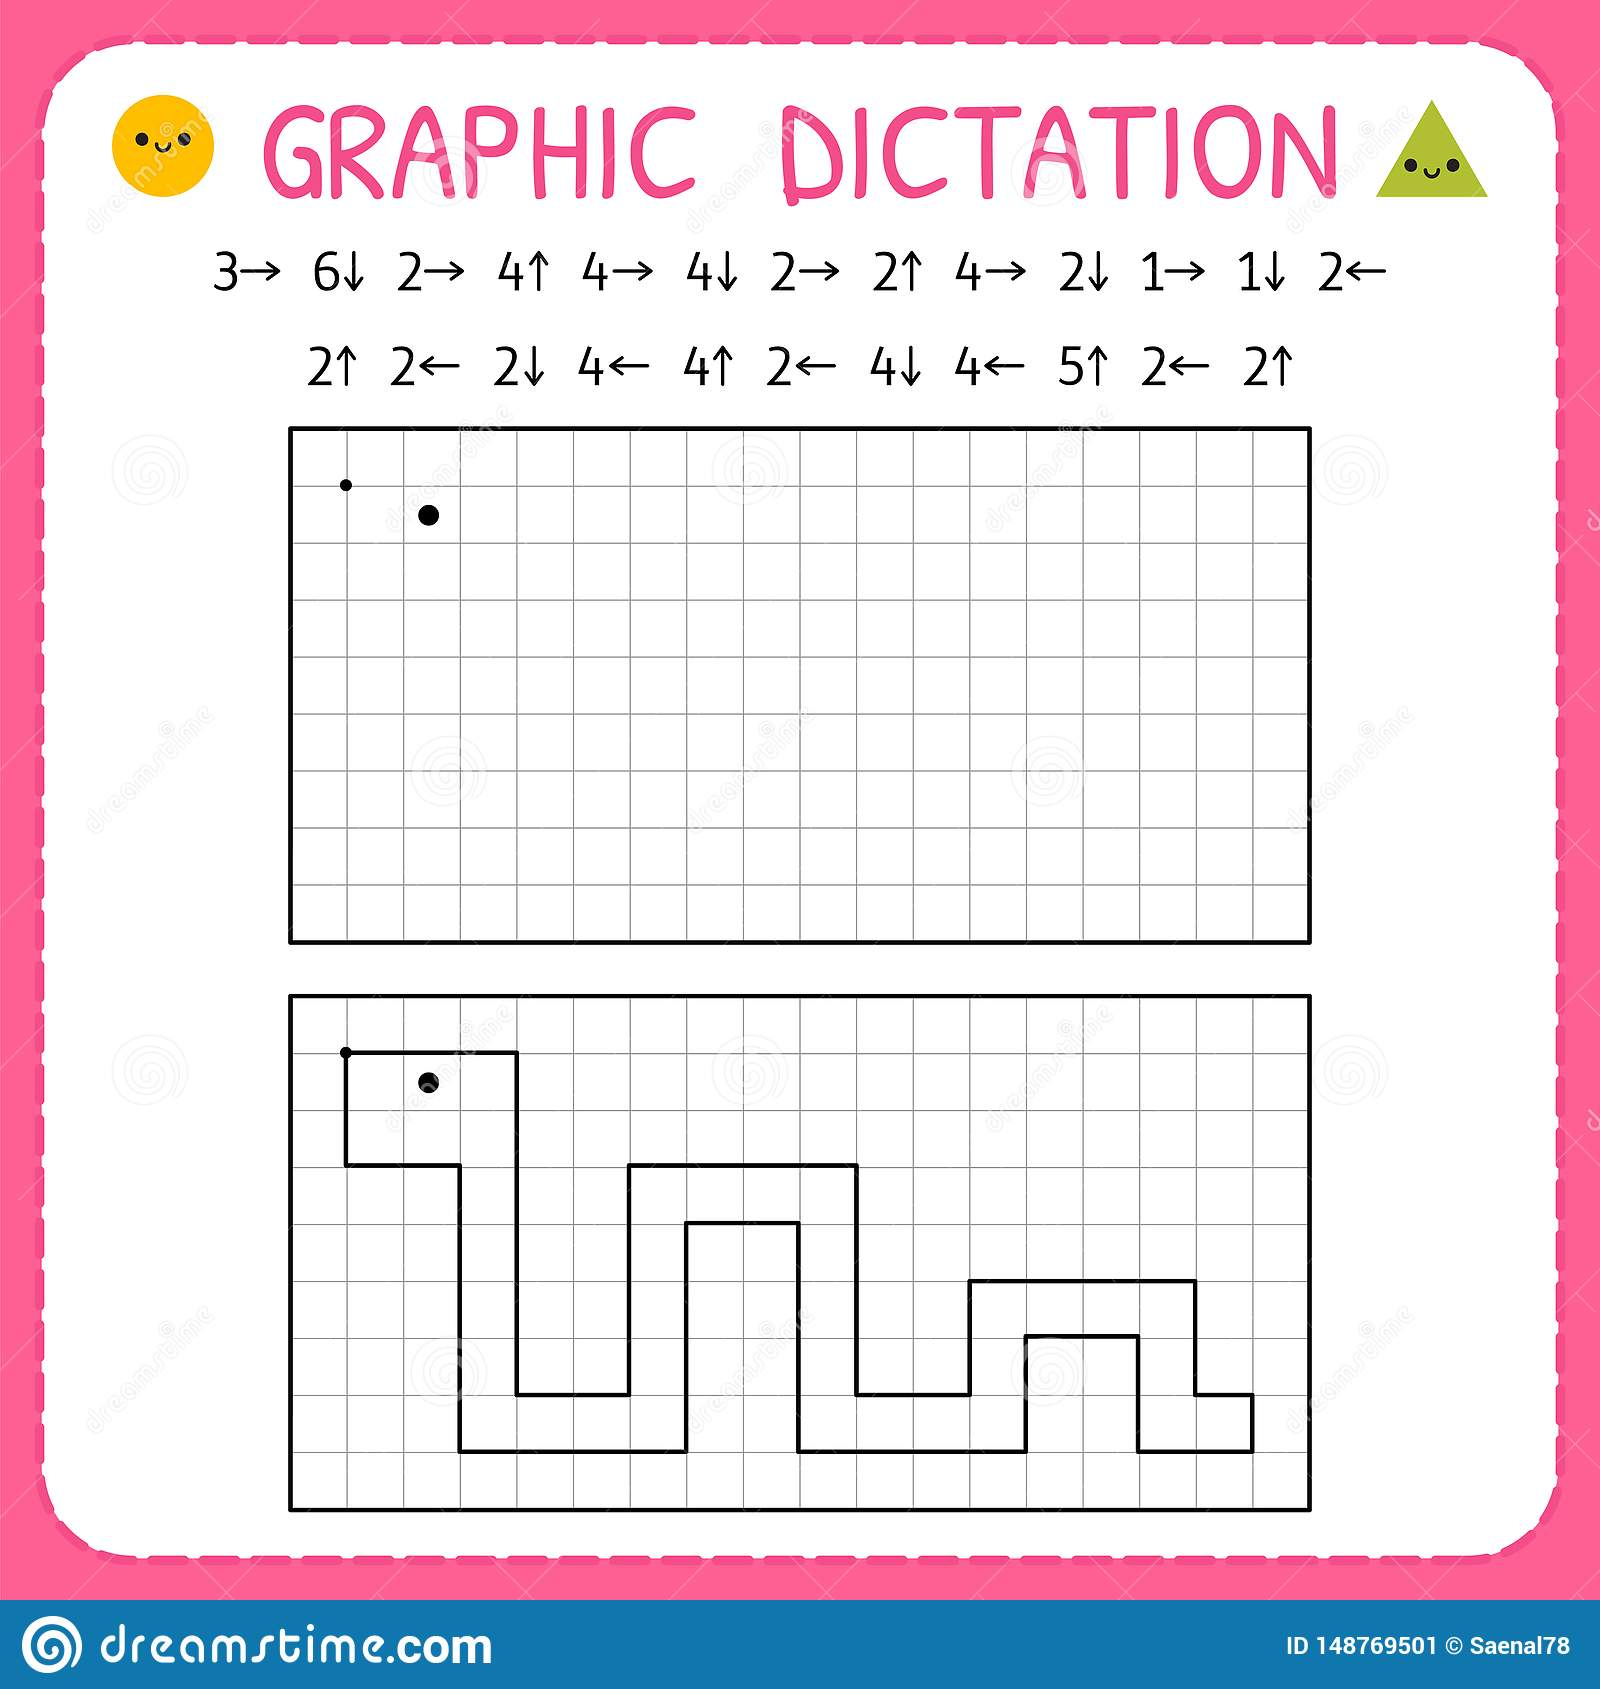 Graphic Dictation Snake Kindergarten Educational Game